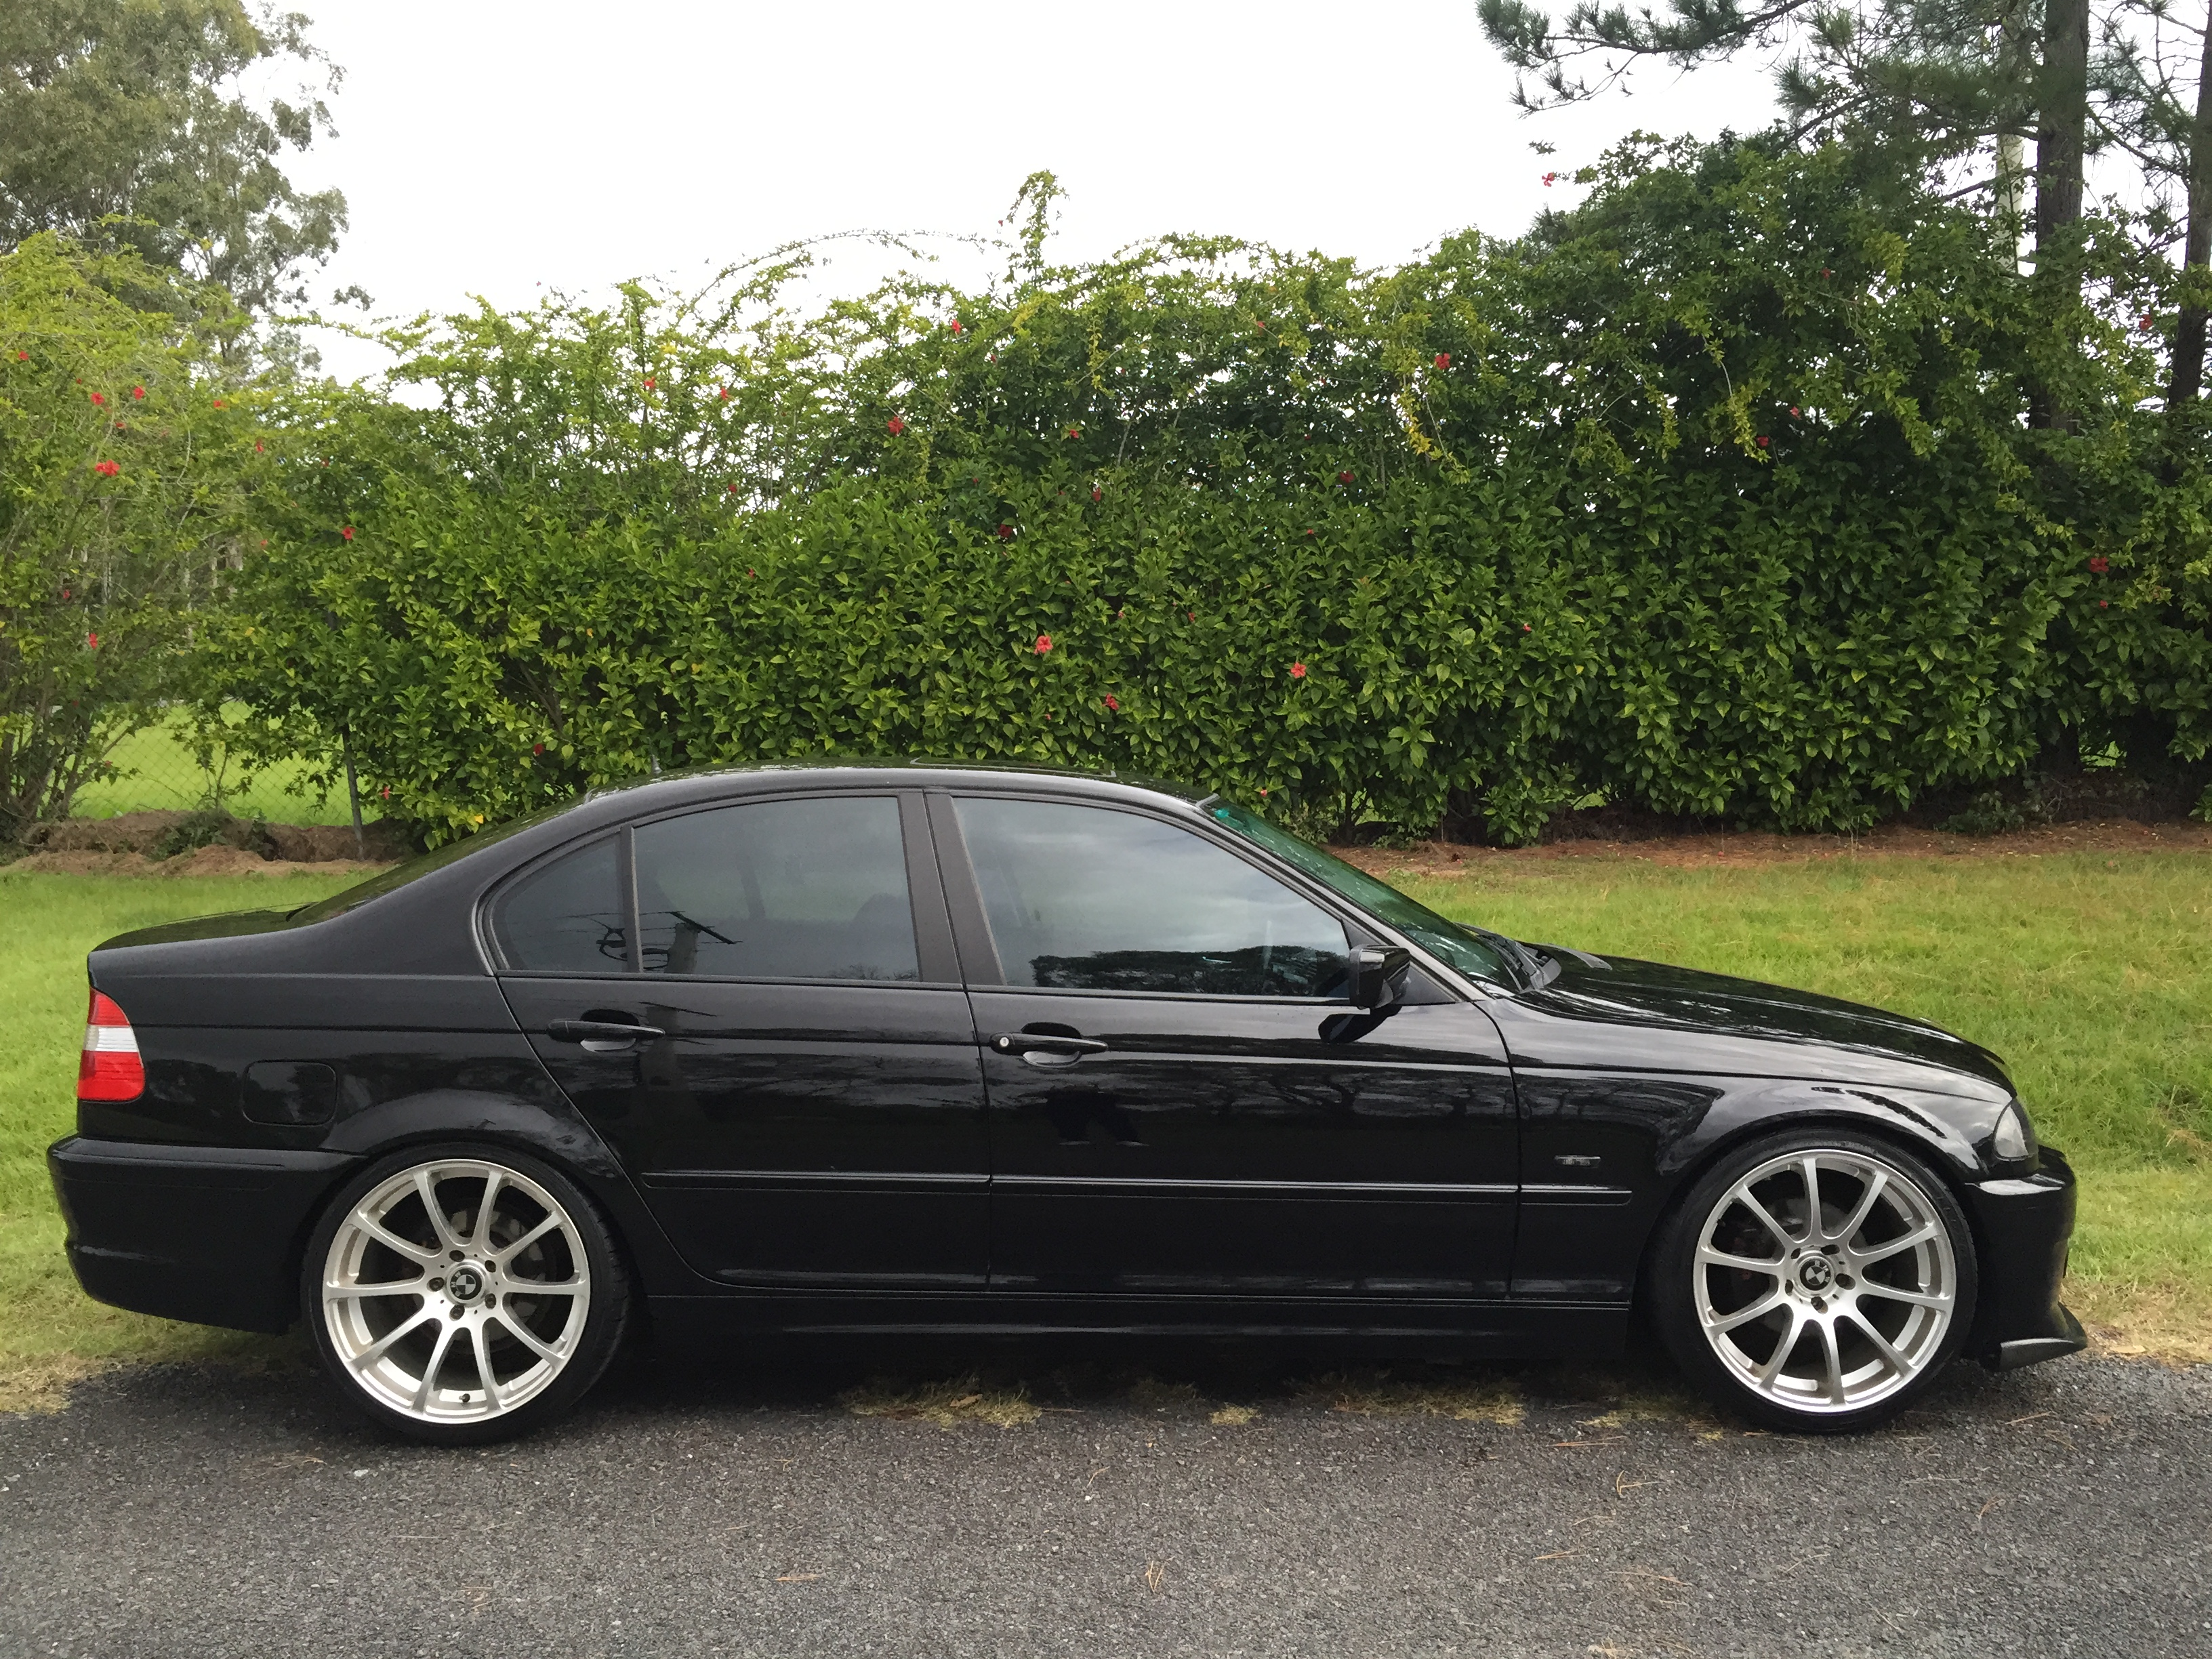 2000 bmw 323i for sale or swap qld brisbane south 2631663. Black Bedroom Furniture Sets. Home Design Ideas